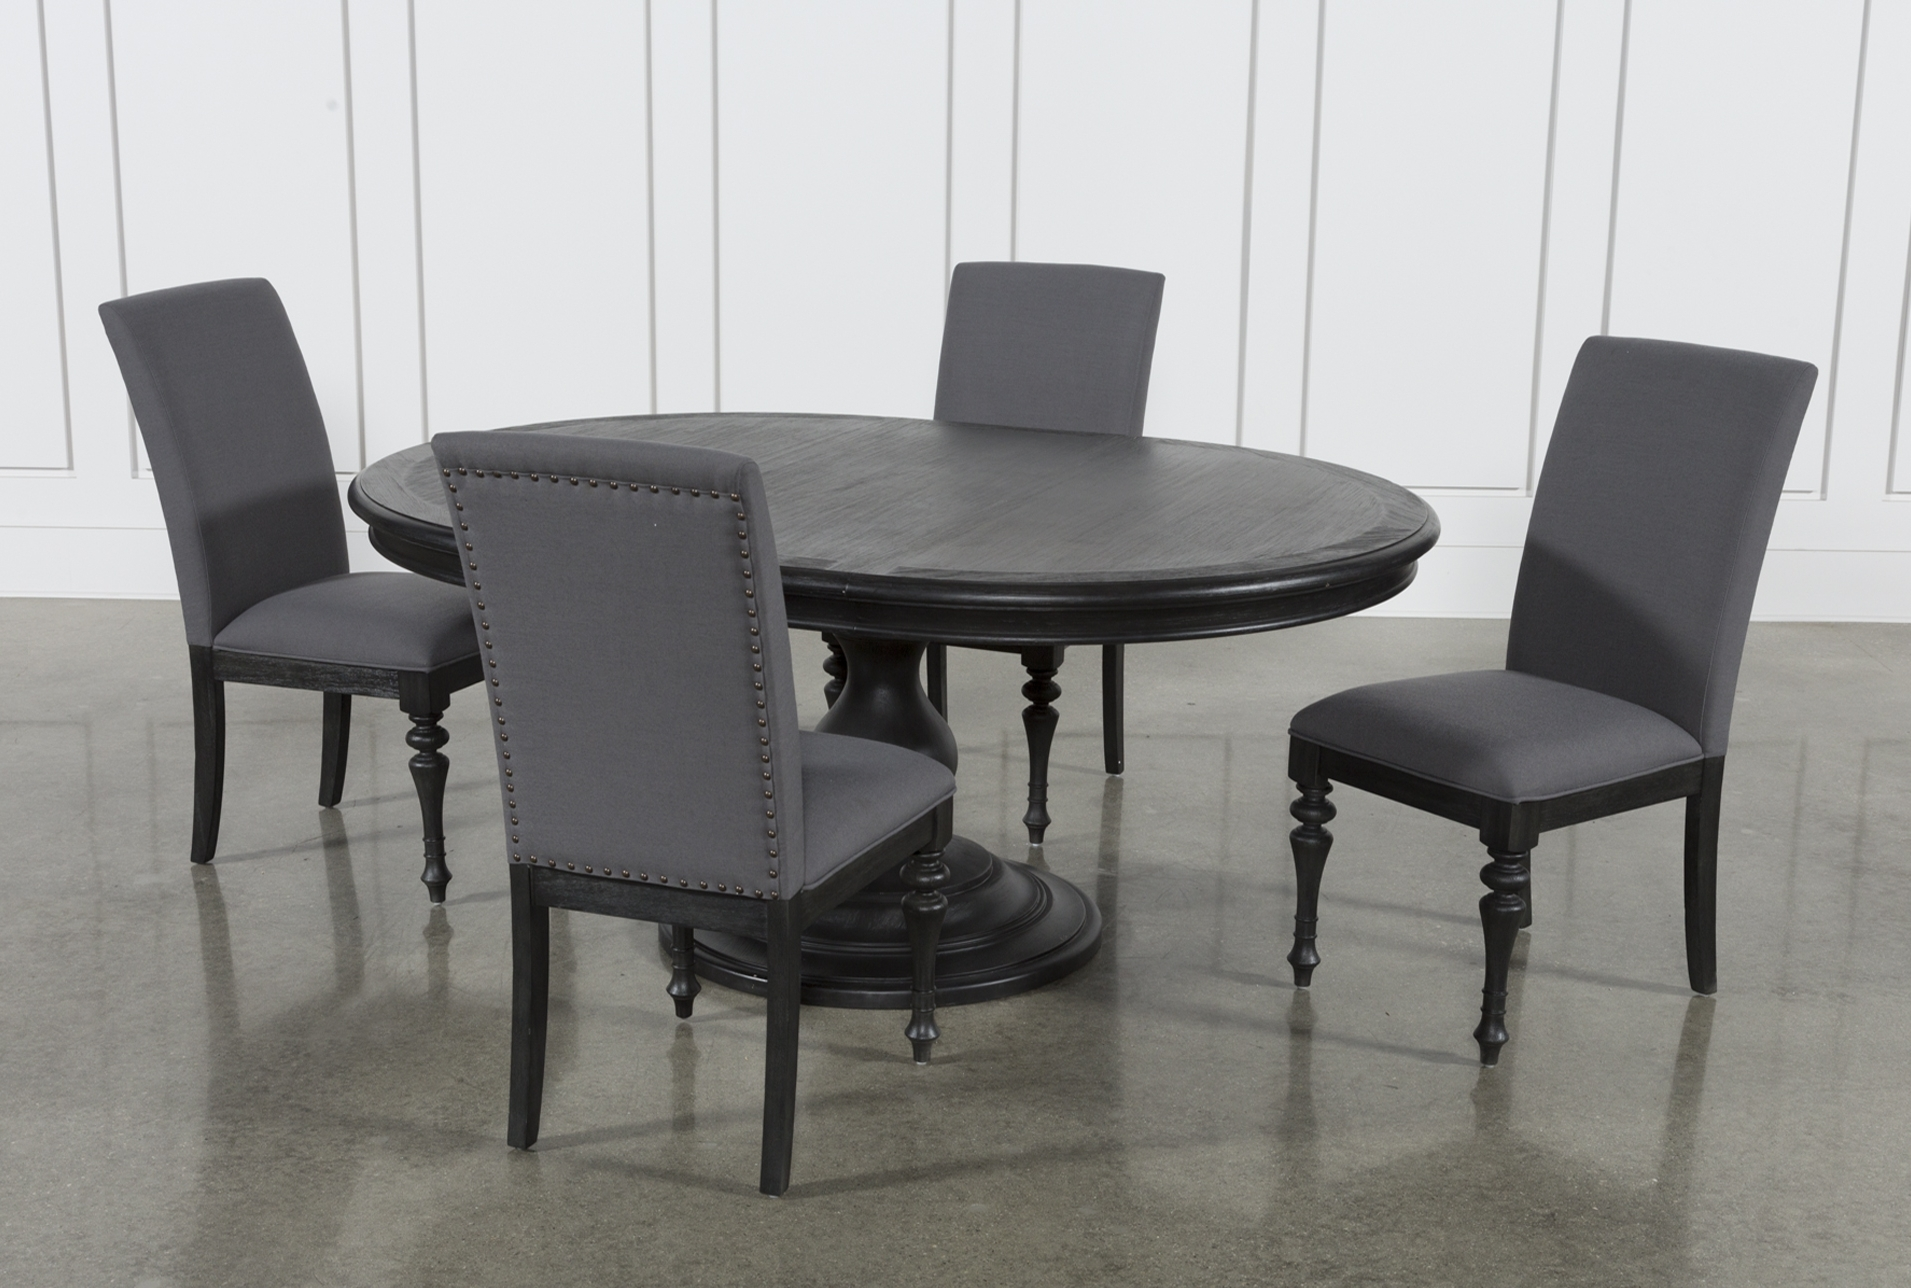 Preferred Caira Black 7 Piece Dining Sets With Upholstered Side Chairs Throughout Global Furniture Bar Table Black (Gallery 8 of 25)